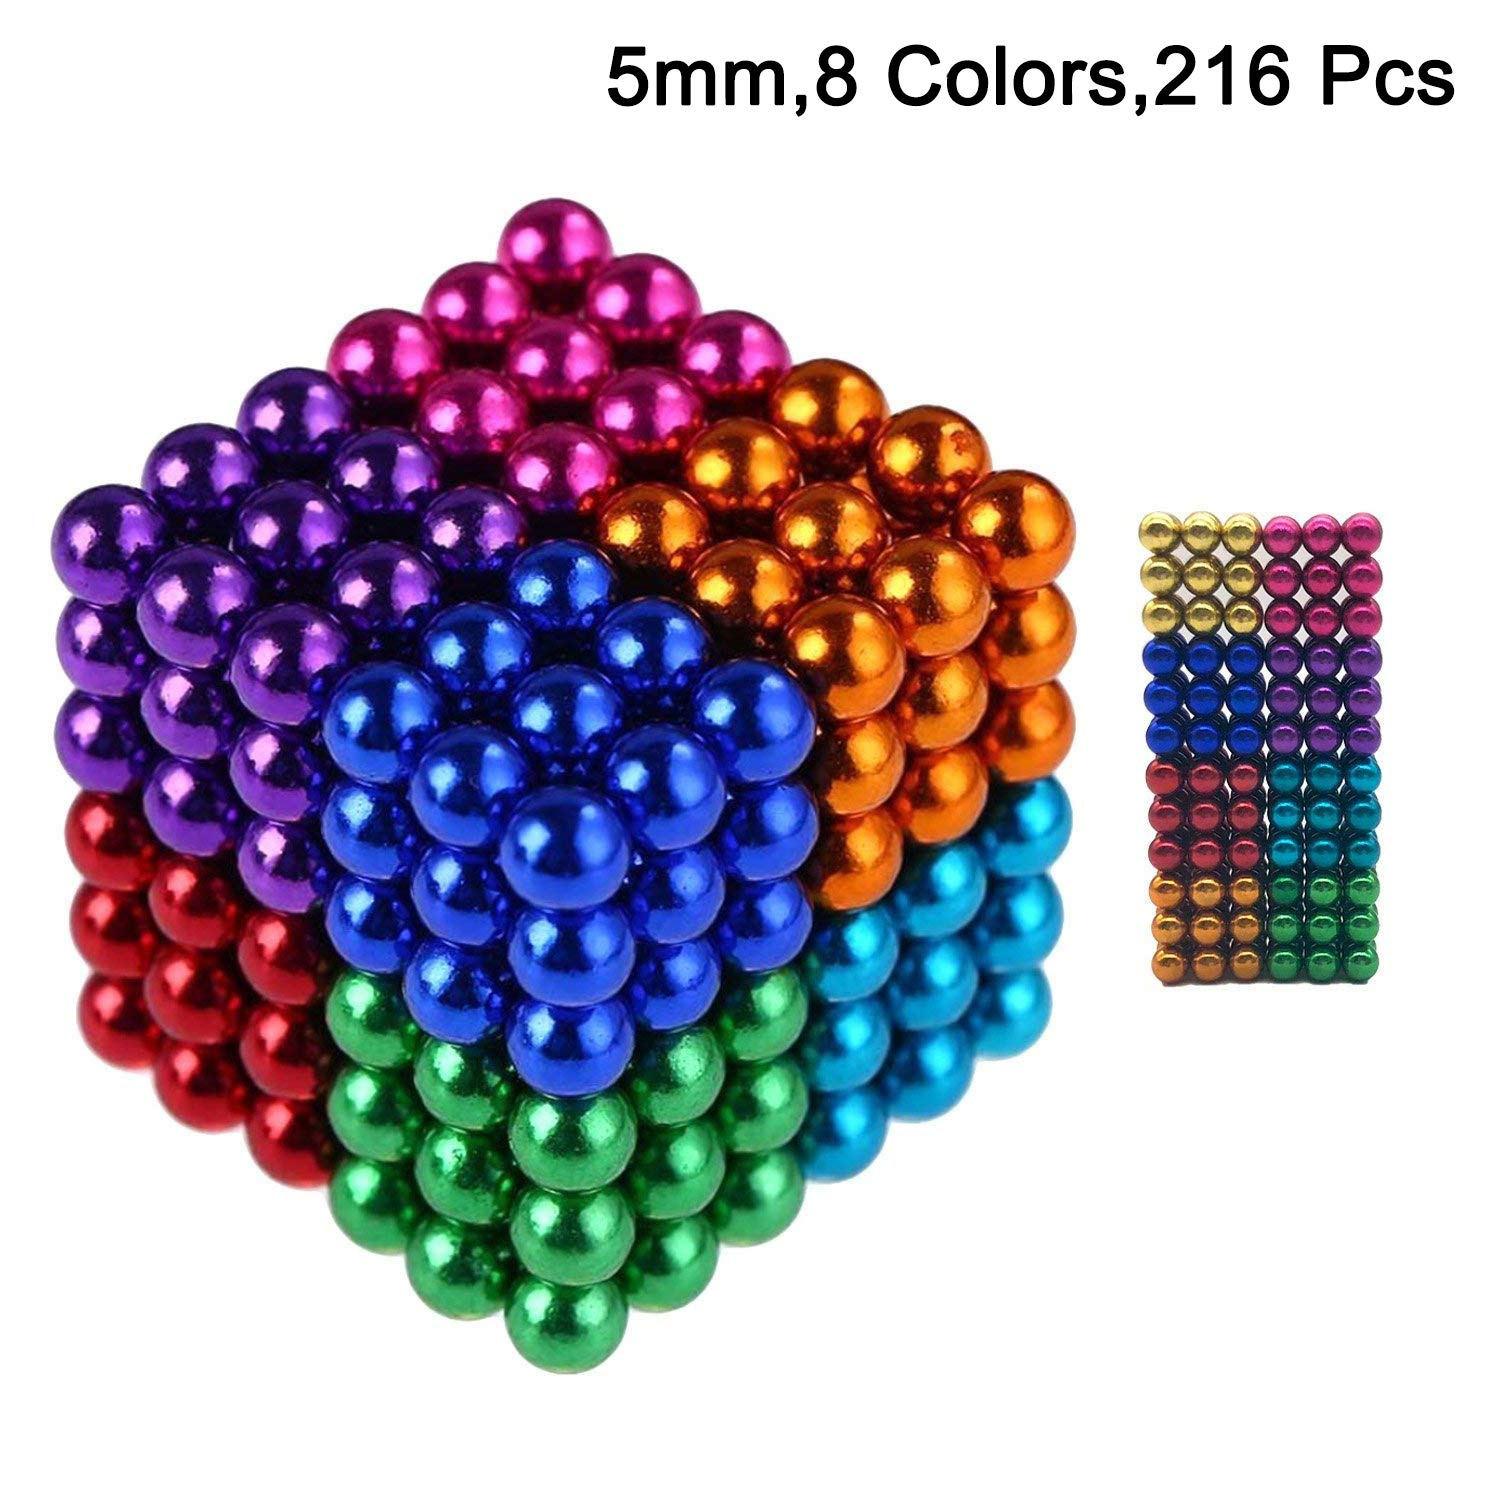 5mm Colorful Magnetic Fidget Blocks Balls, EVERMARKET Magnetic Sculpture Puzzle Toy for Intelligence Development and Stress Relief, a Toy for Office, Education - with Metal Gift Box (8 Colors Style) EVERMARKET INC